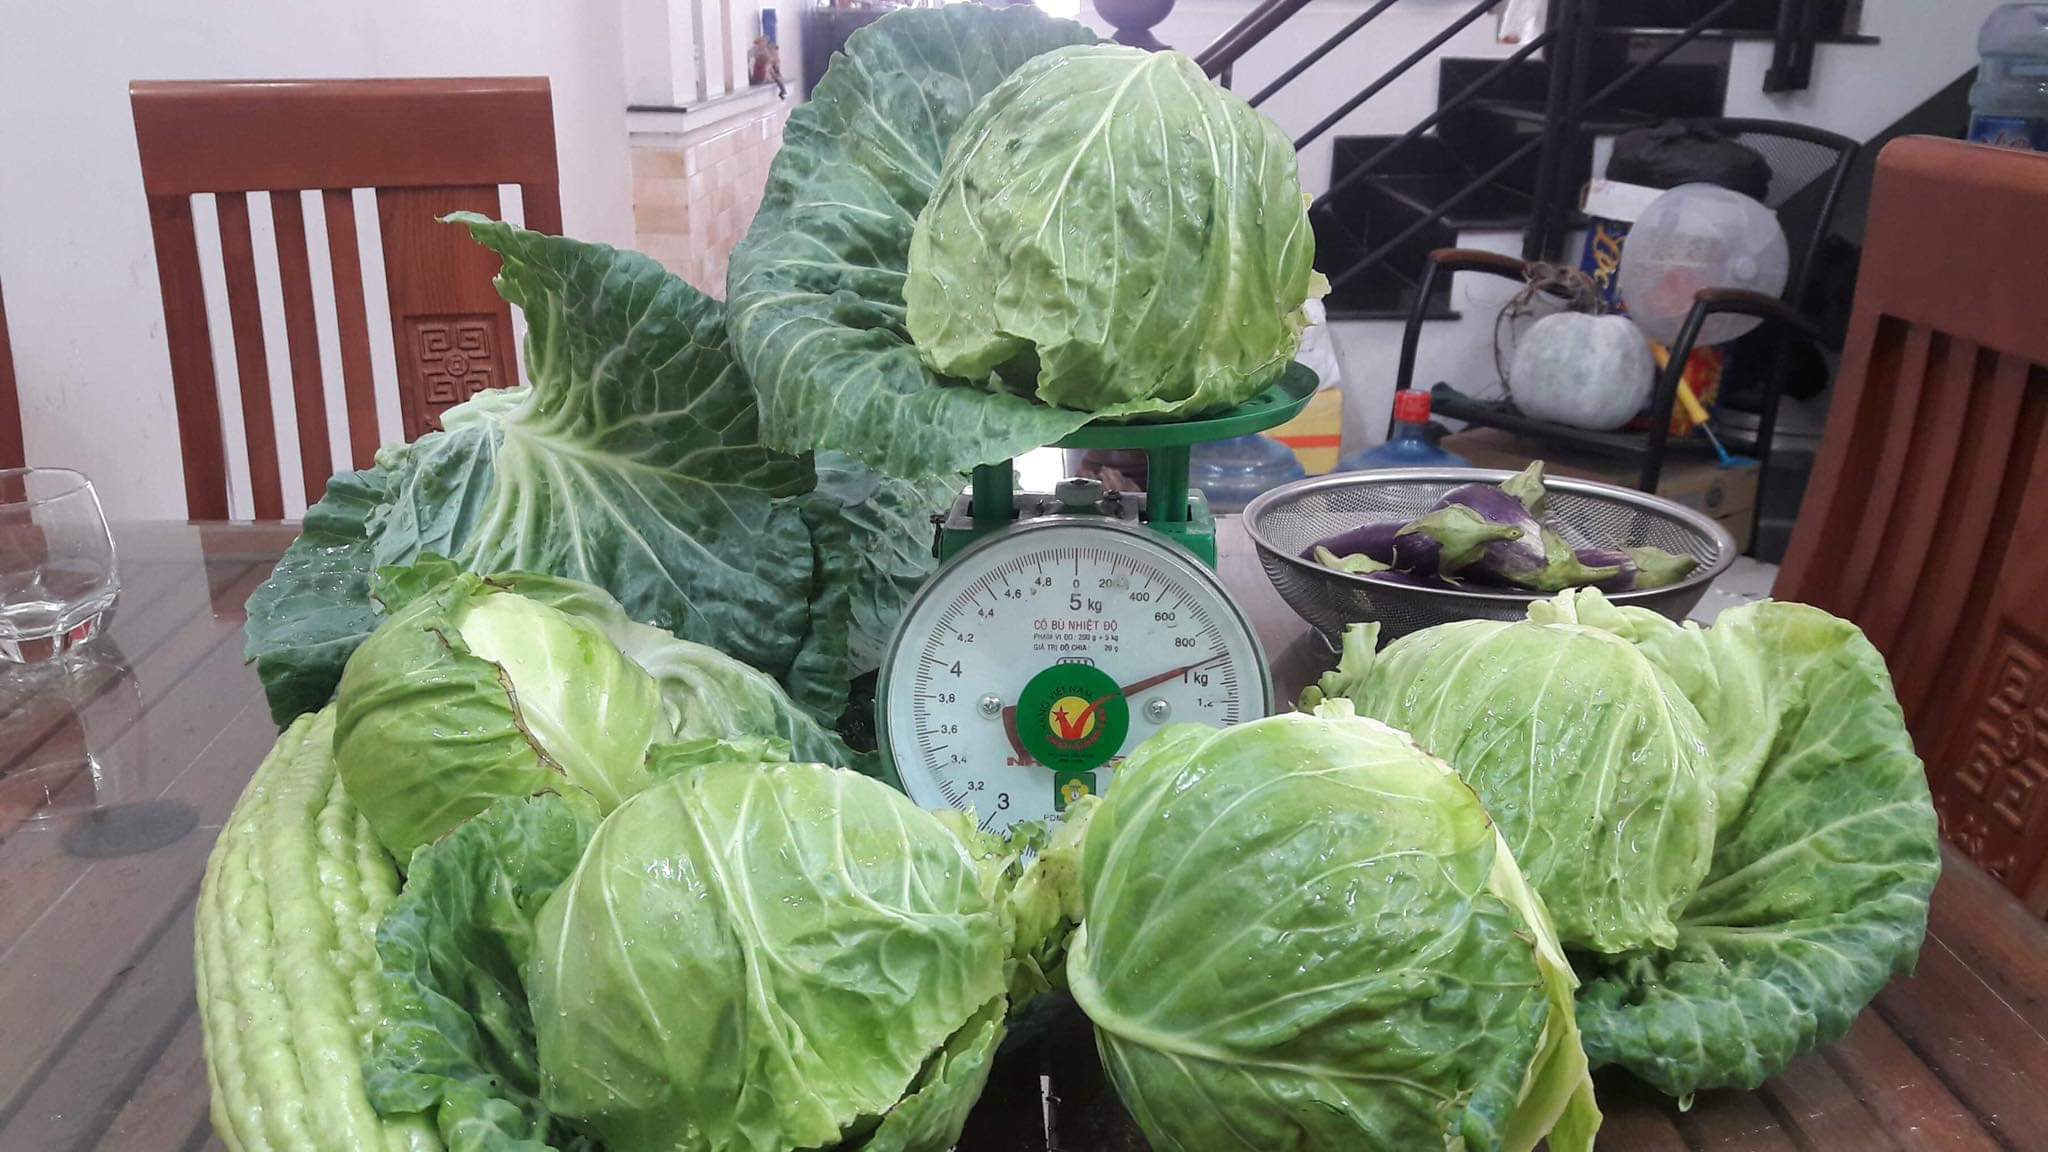 A day's cabbage harvest from a previous year